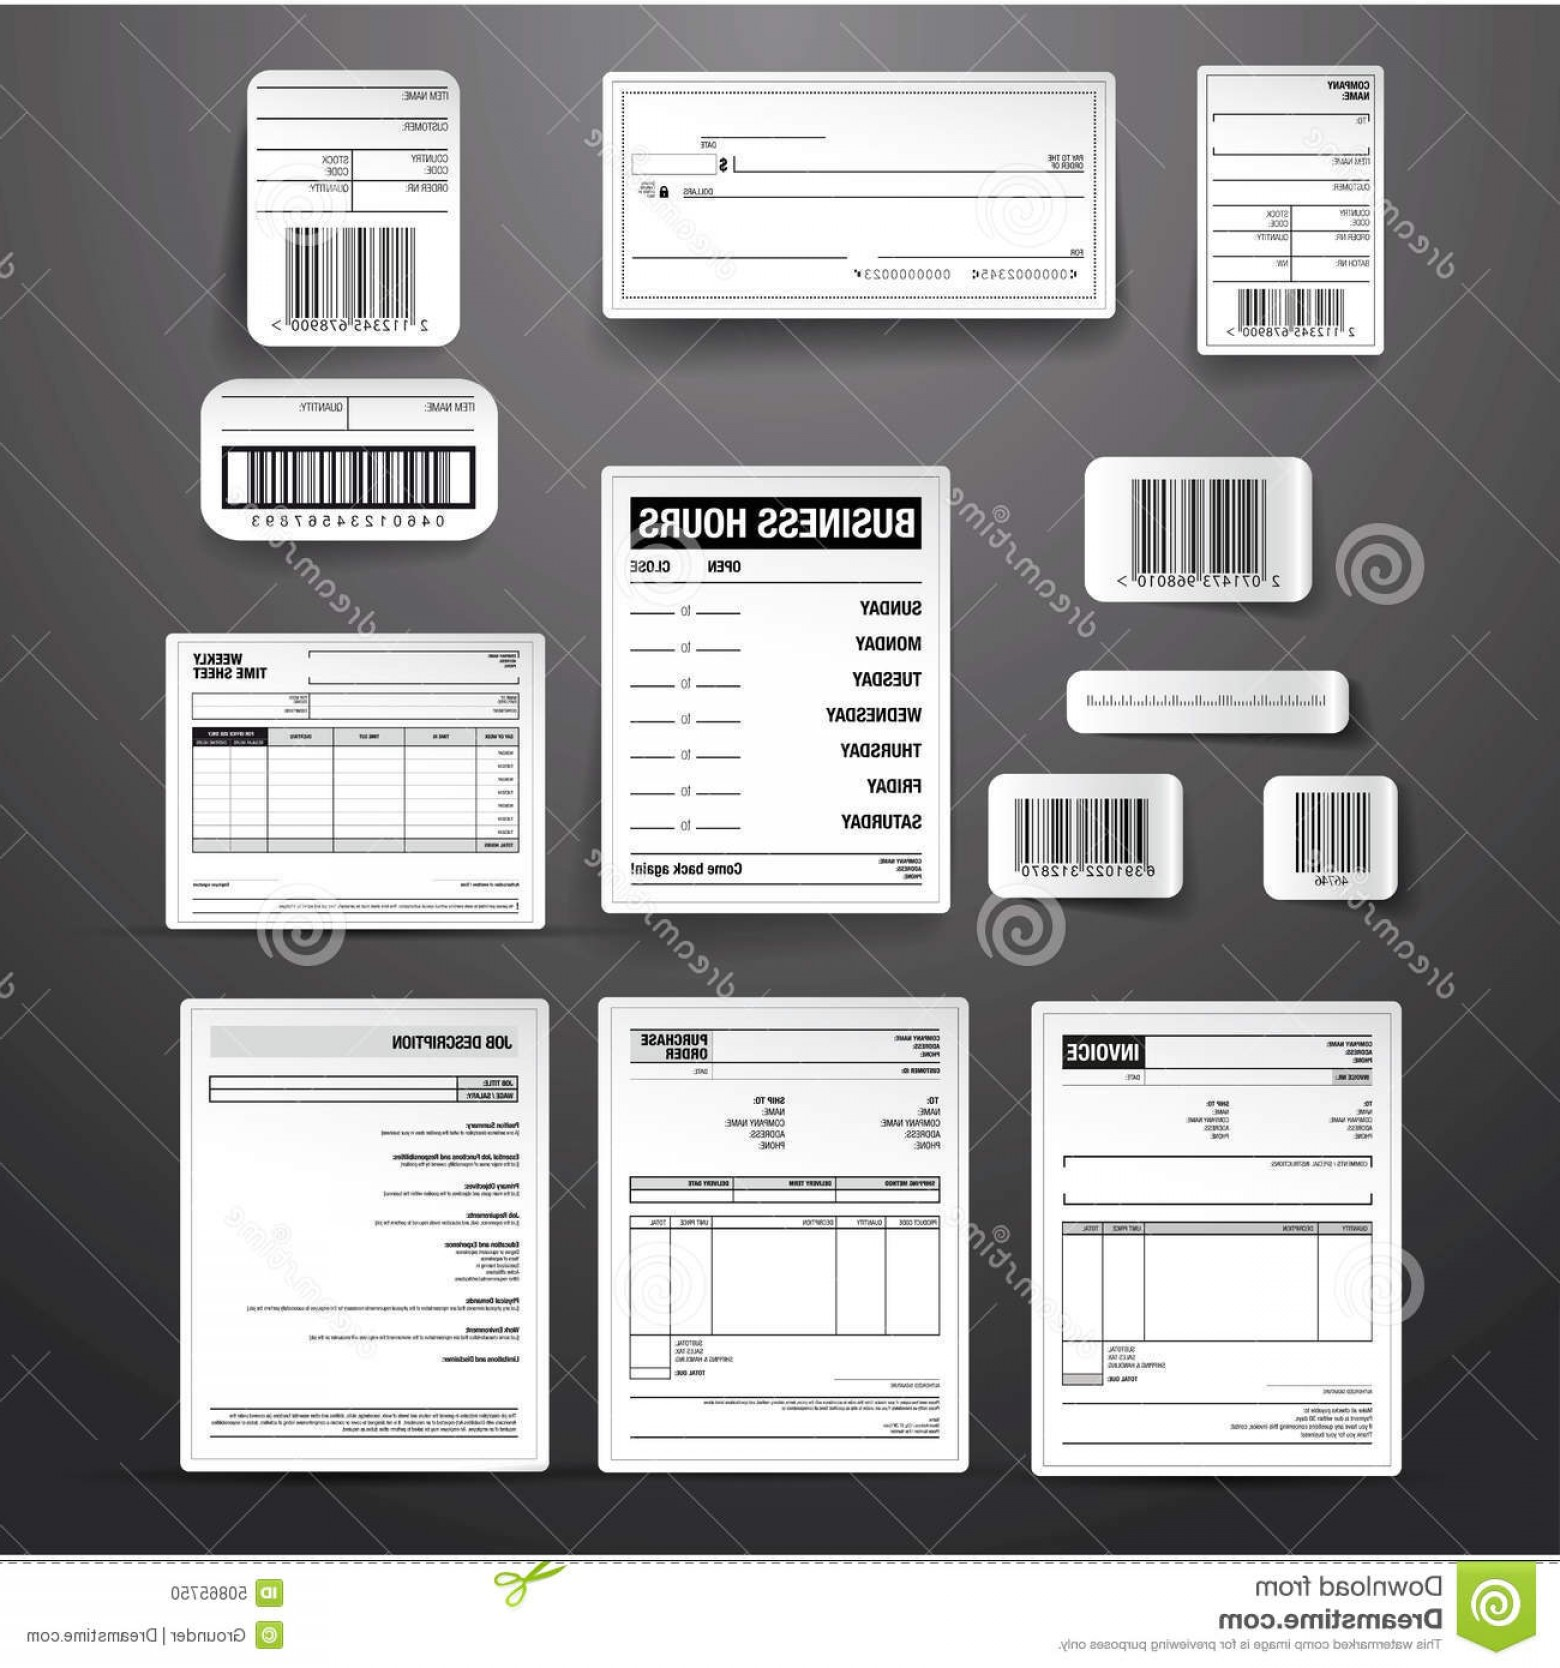 Vectors Job Description: Stock Illustration Business Template Vector Set Grey Barcode Label Order Invoice Job Description Time Sheet Check Image